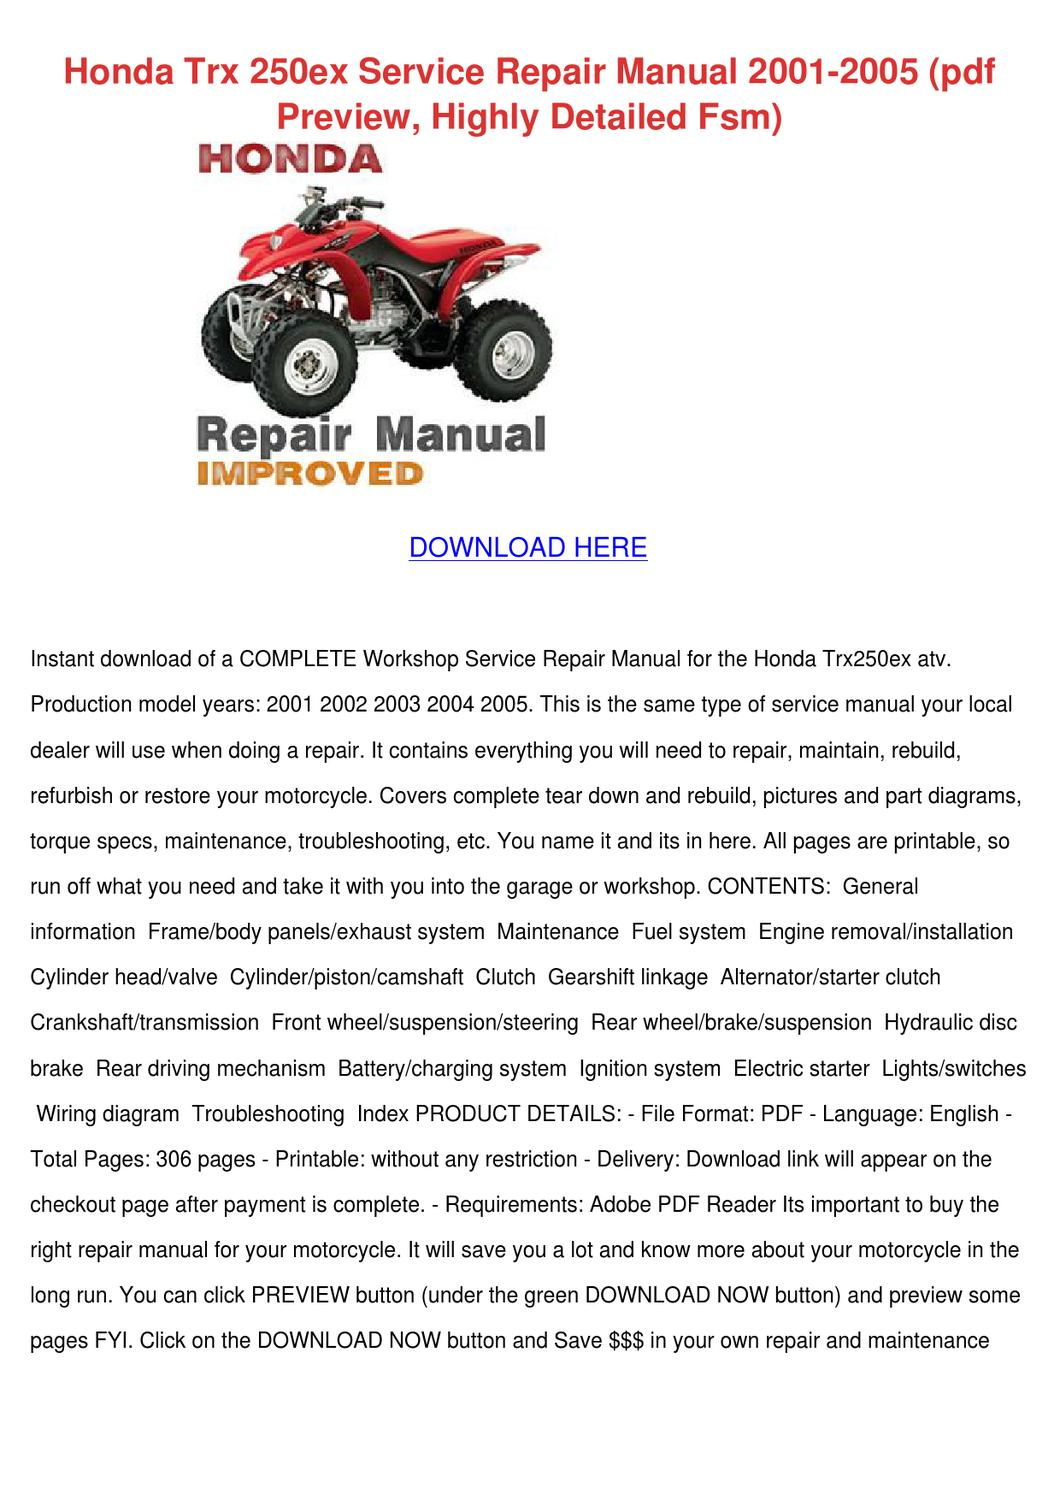 Honda Trx 250ex Service Repair Manual 2001 20 By Isabelgandy